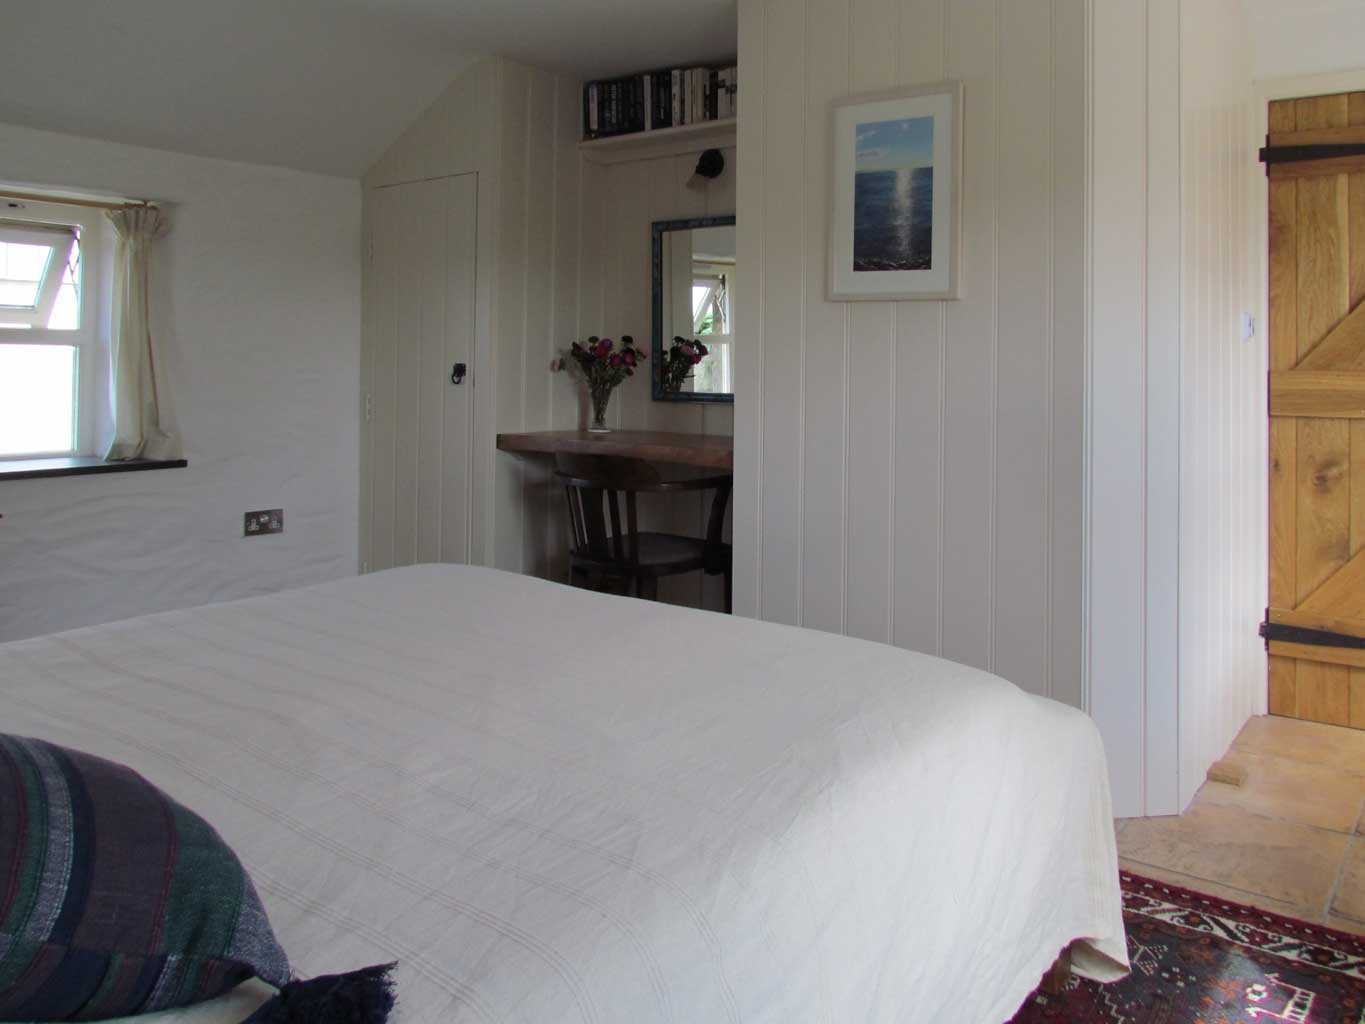 The main bedroom has a king size bed, built in wardrobe and dressing table with mirror